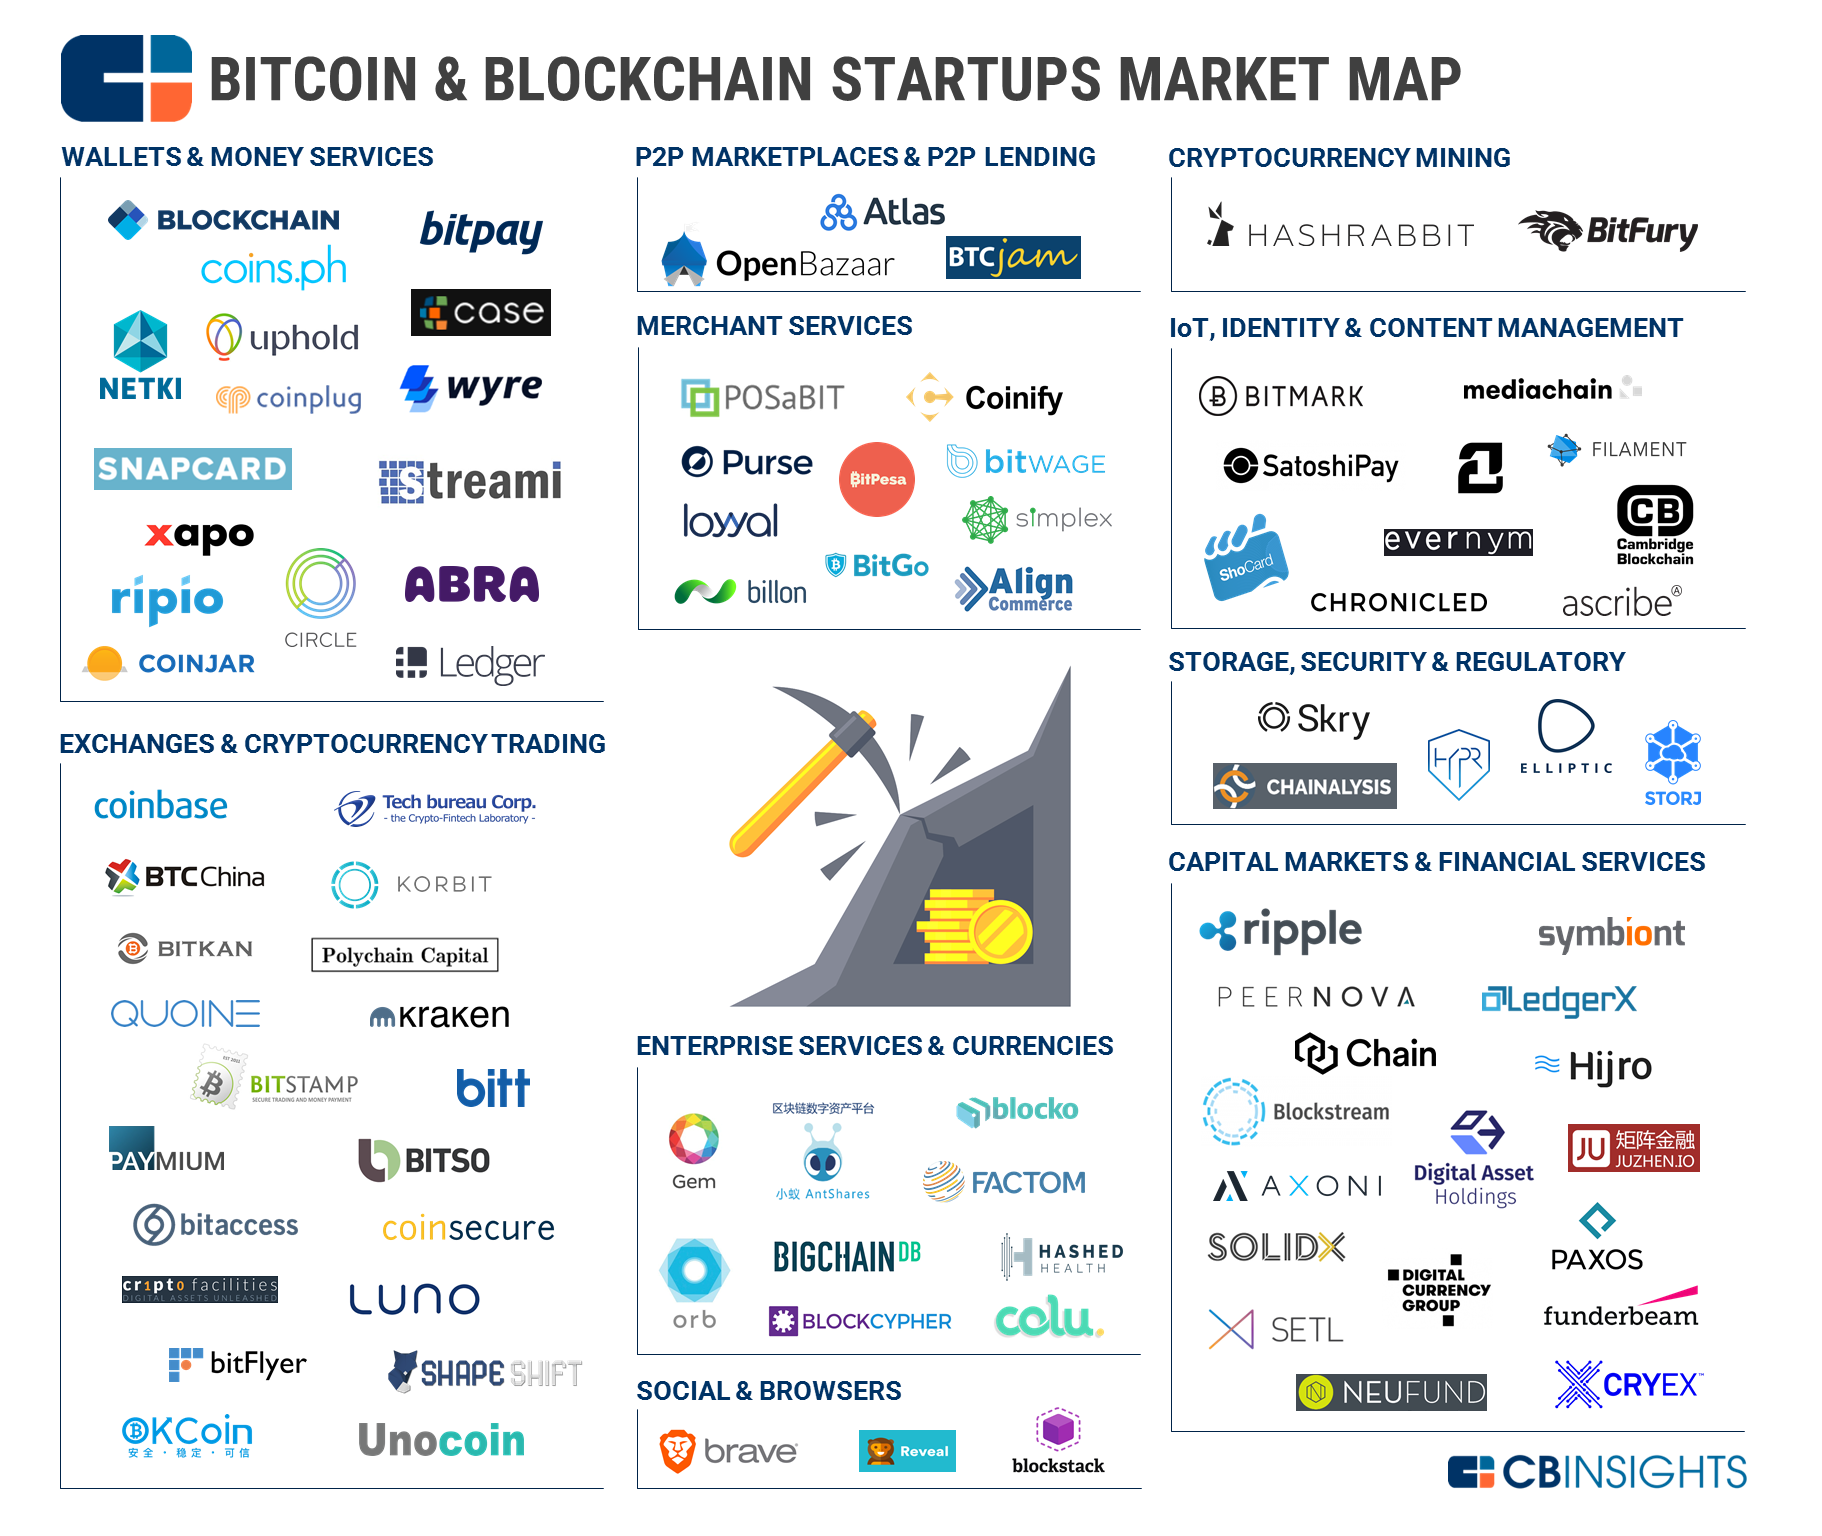 Bitcoin and Blockchain Startups Market Cap